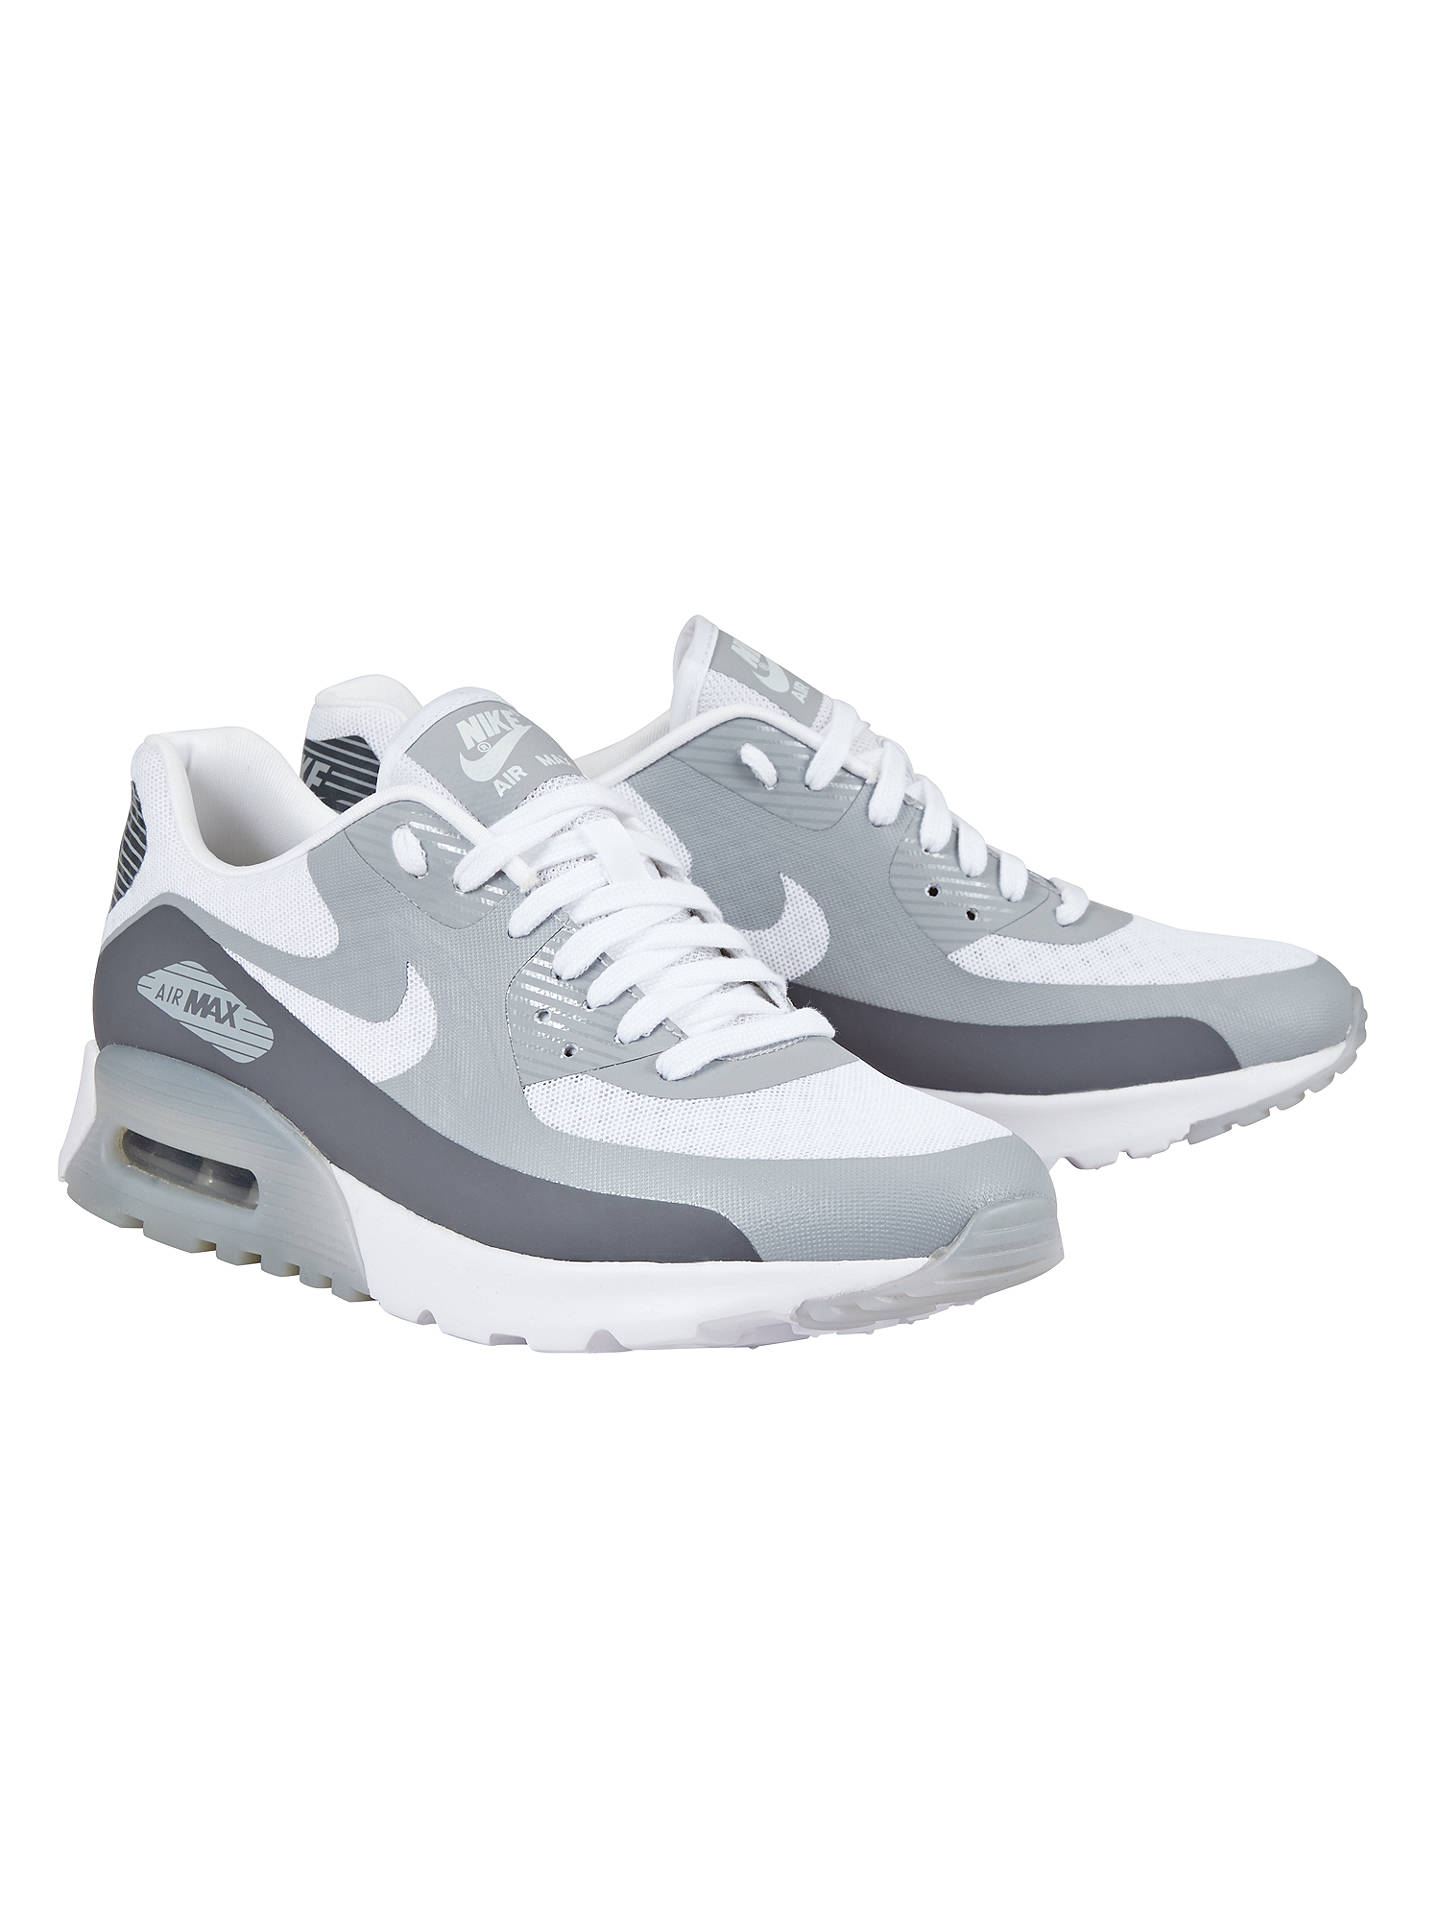 newest a88a3 3093c ... Buy Nike Air Max 90 Ultra Breathe Women s Trainers, White Wolf Grey, 3  ...